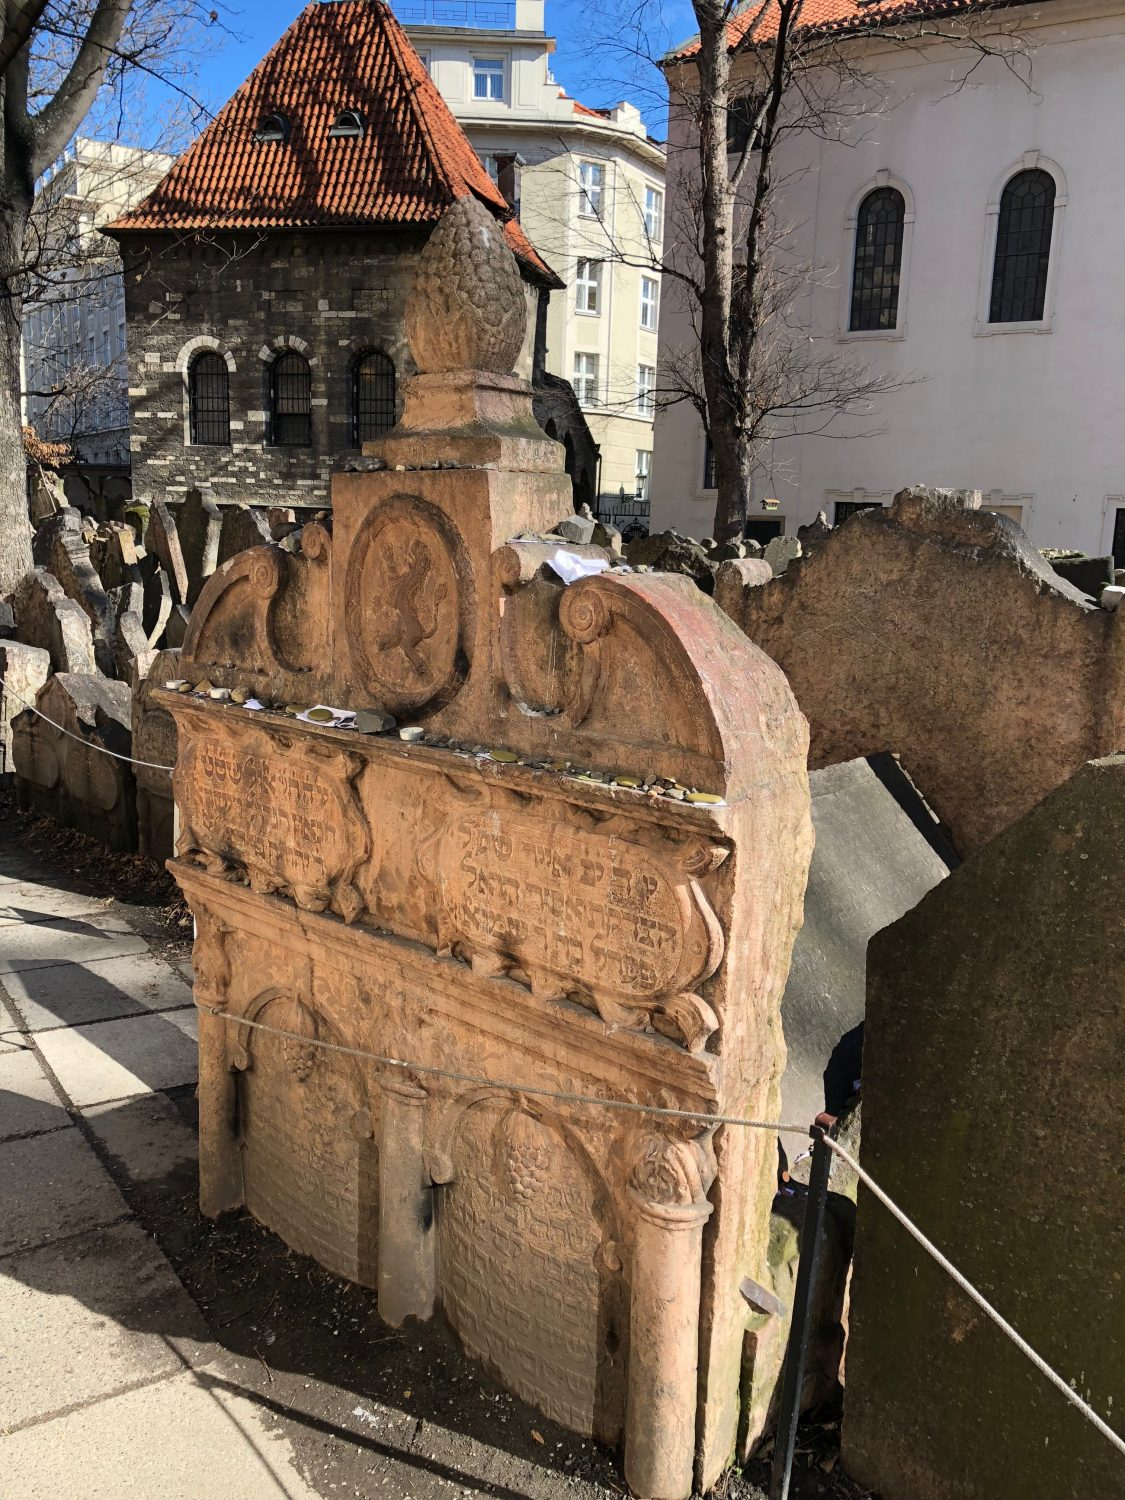 Old Jewish Cemetery and the grave of Rabbi Loew